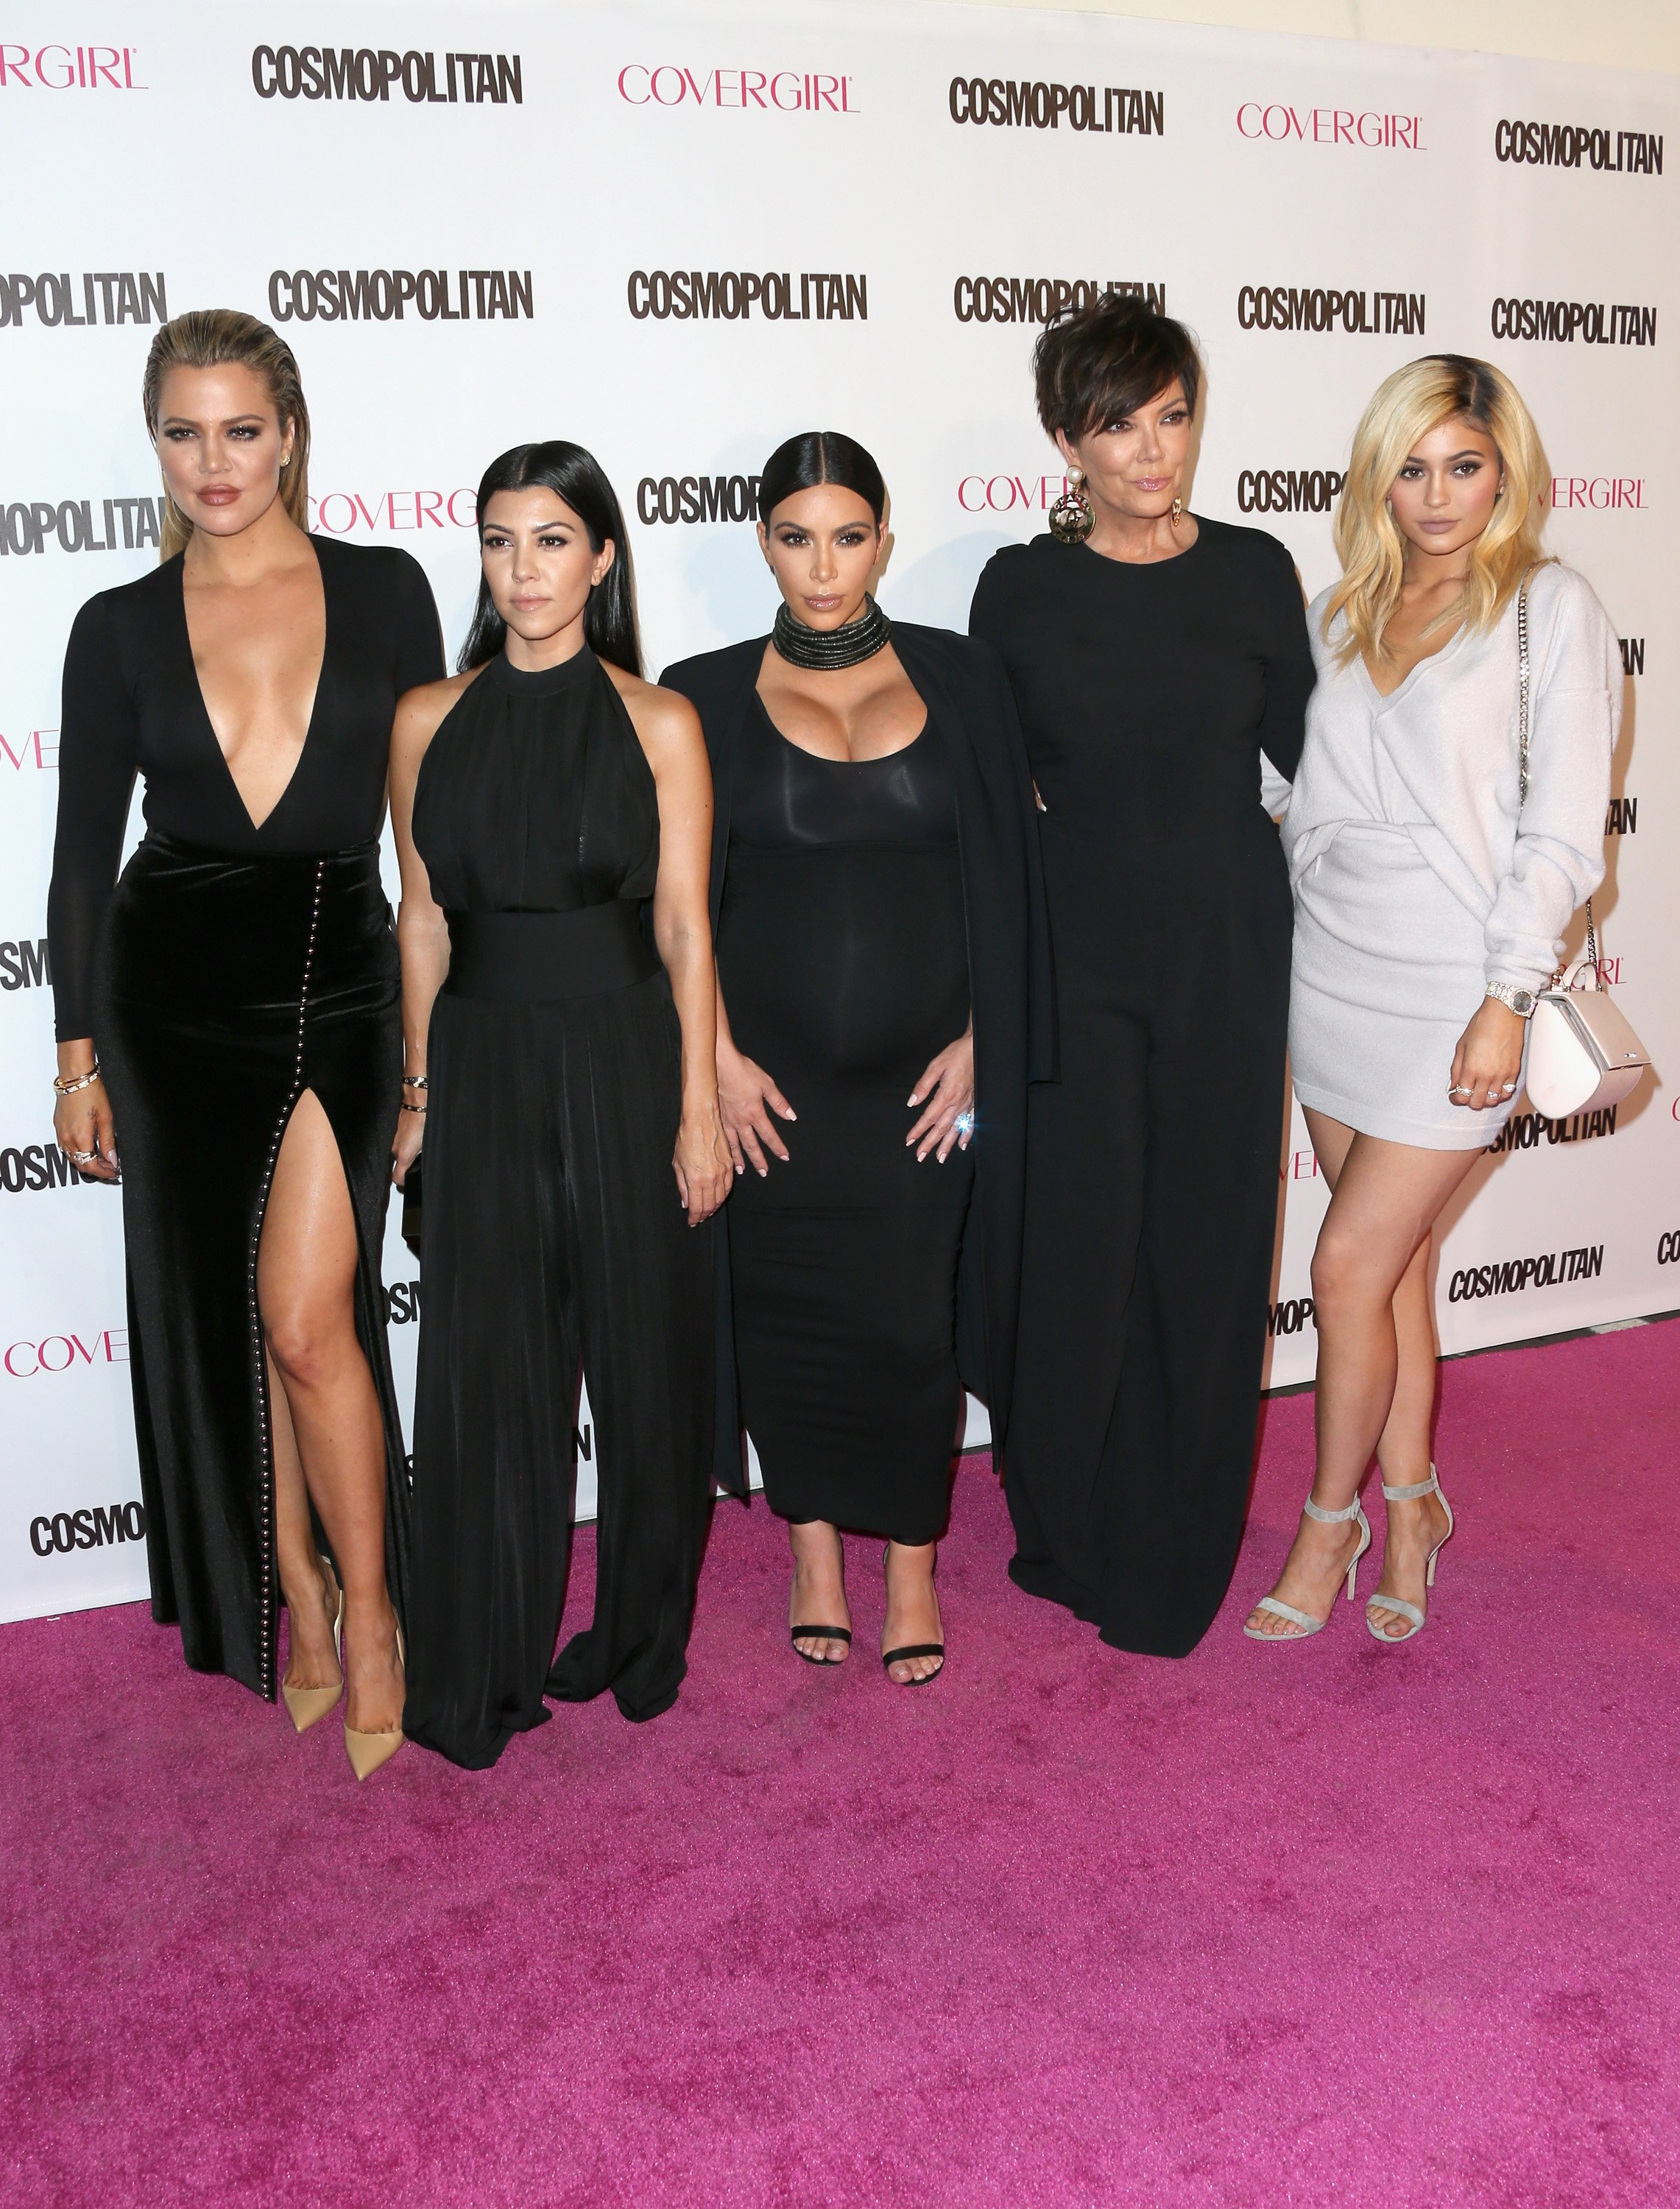 TV personalities Khloe Kardashian, Kourtney Kardashian, Kim Kardashian, Kris Jenner and Kylie Jenner attend Cosmopolitan's 50th Birthday Celebration | Source: Getty Images